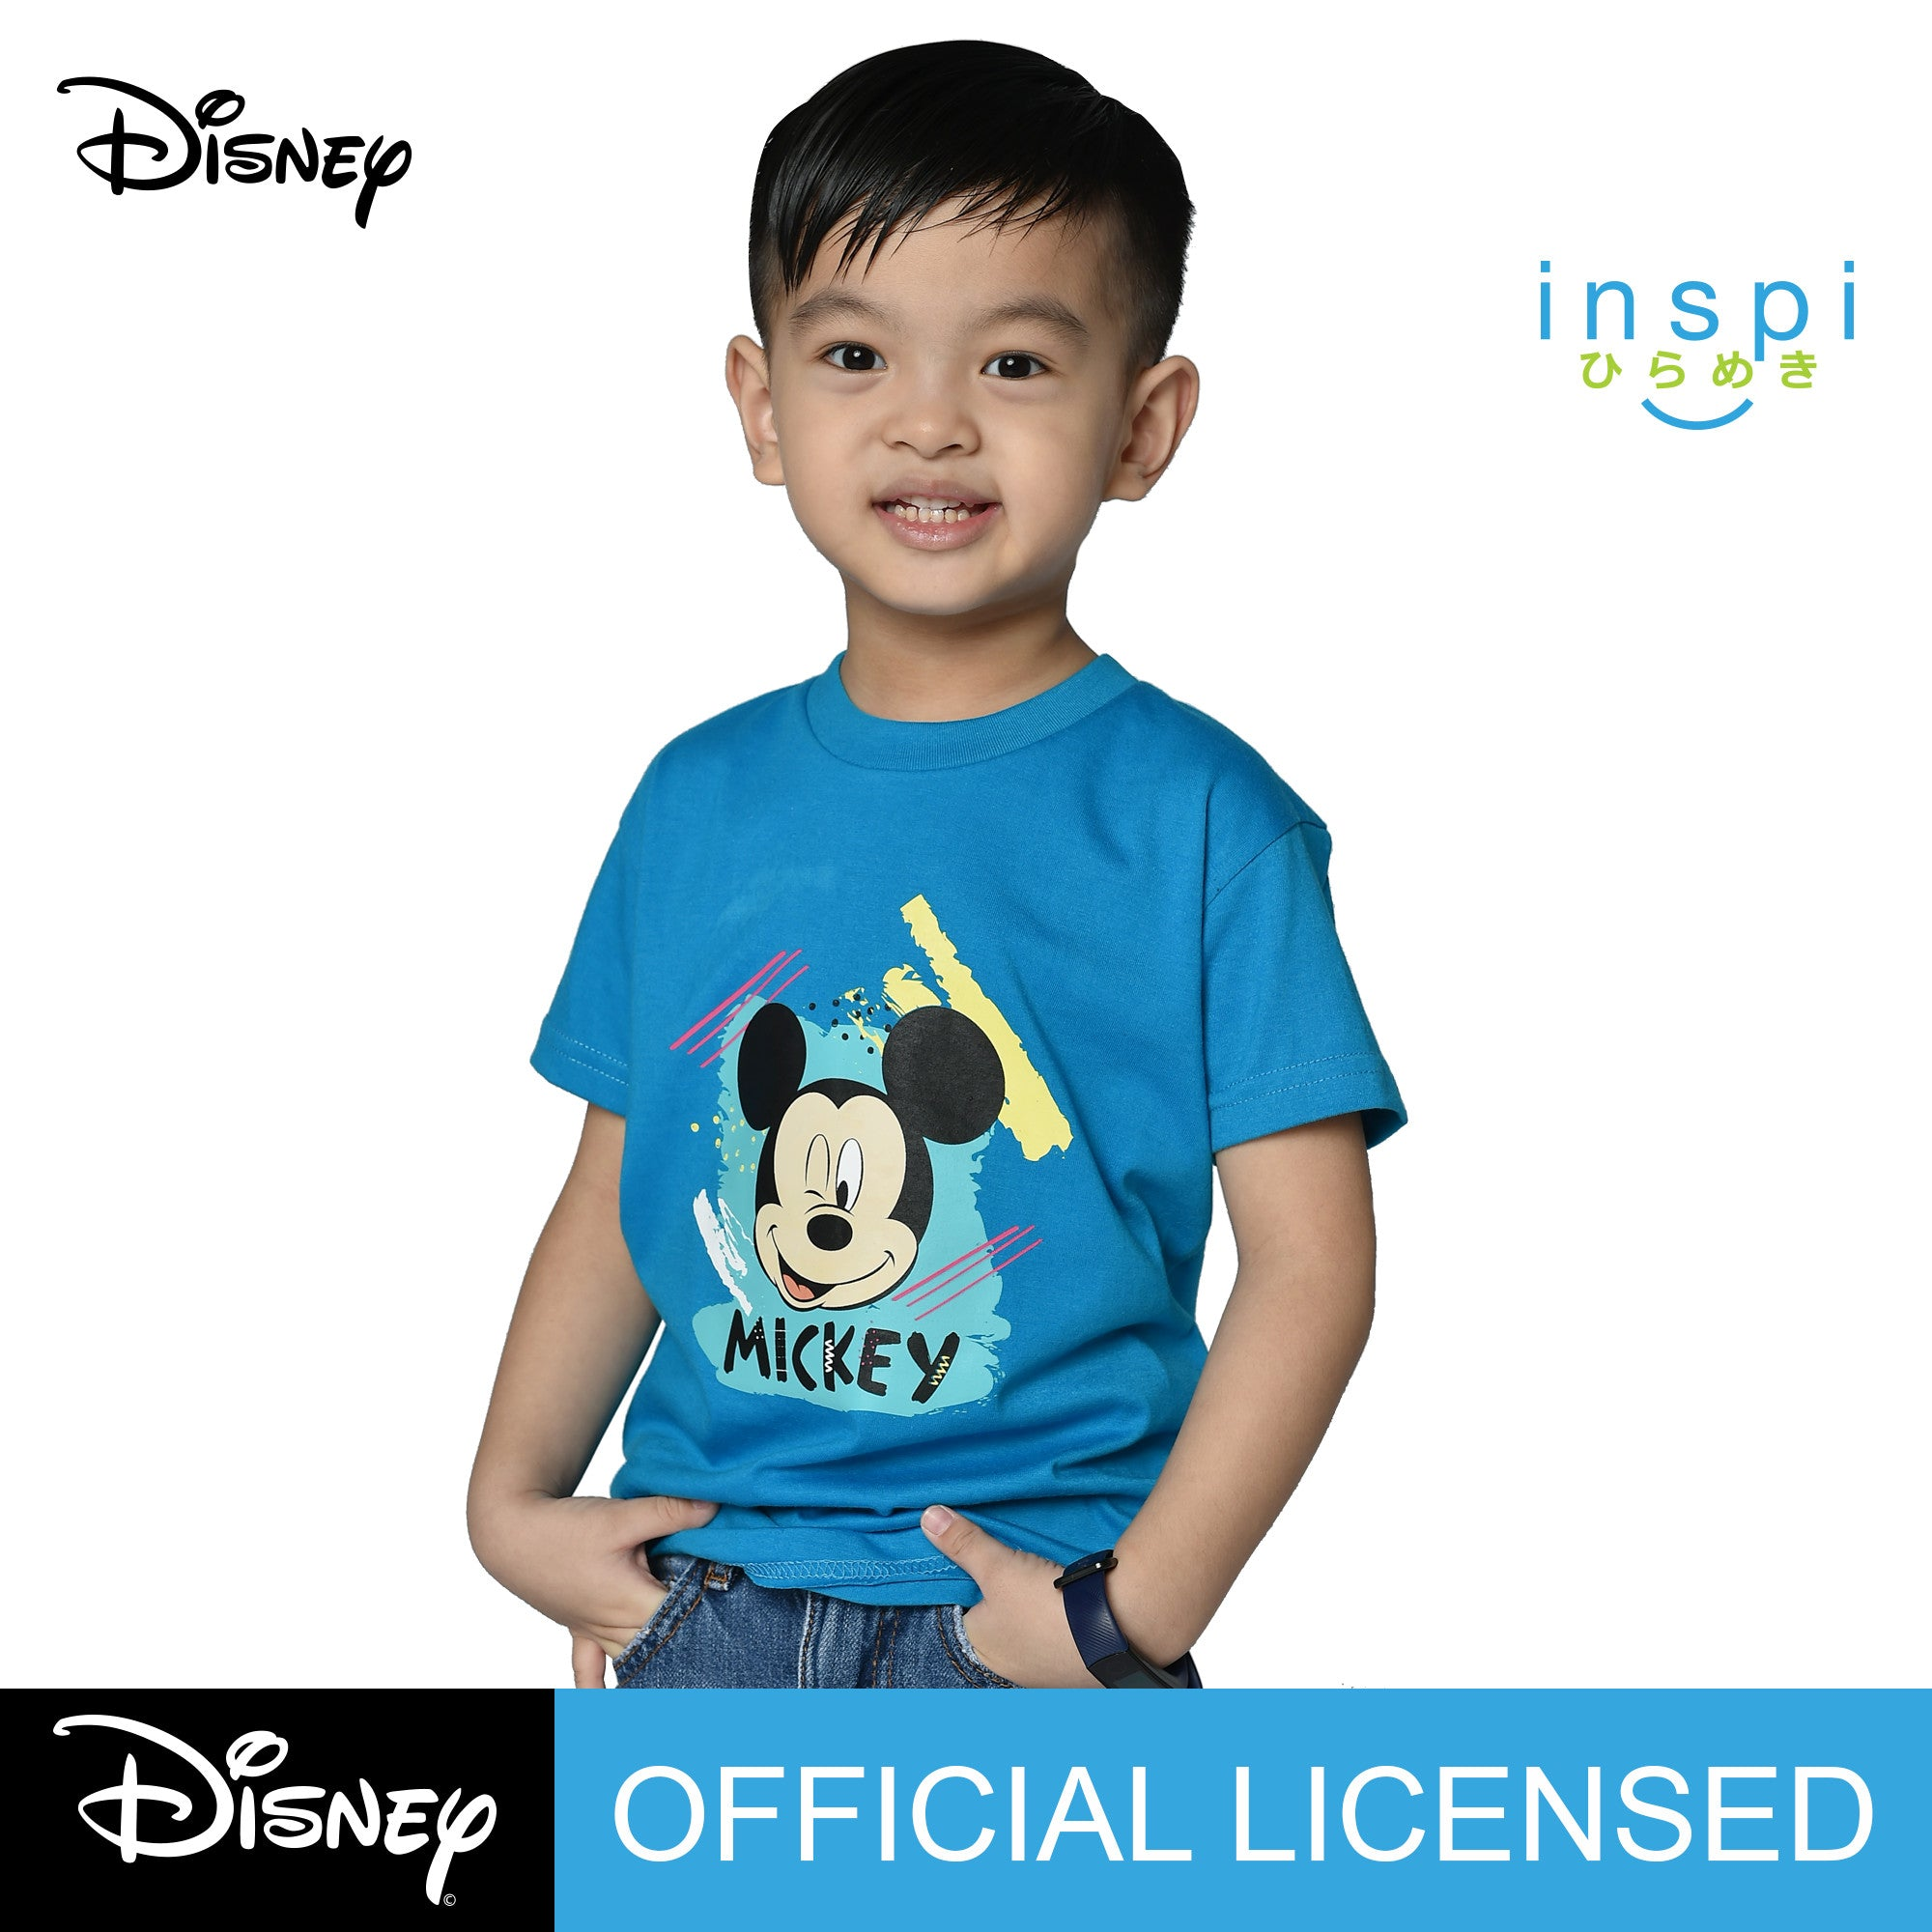 Disney Mickey Mouse Color Burst Tshirt in Aqua Blue for Boys Inspi Shirt